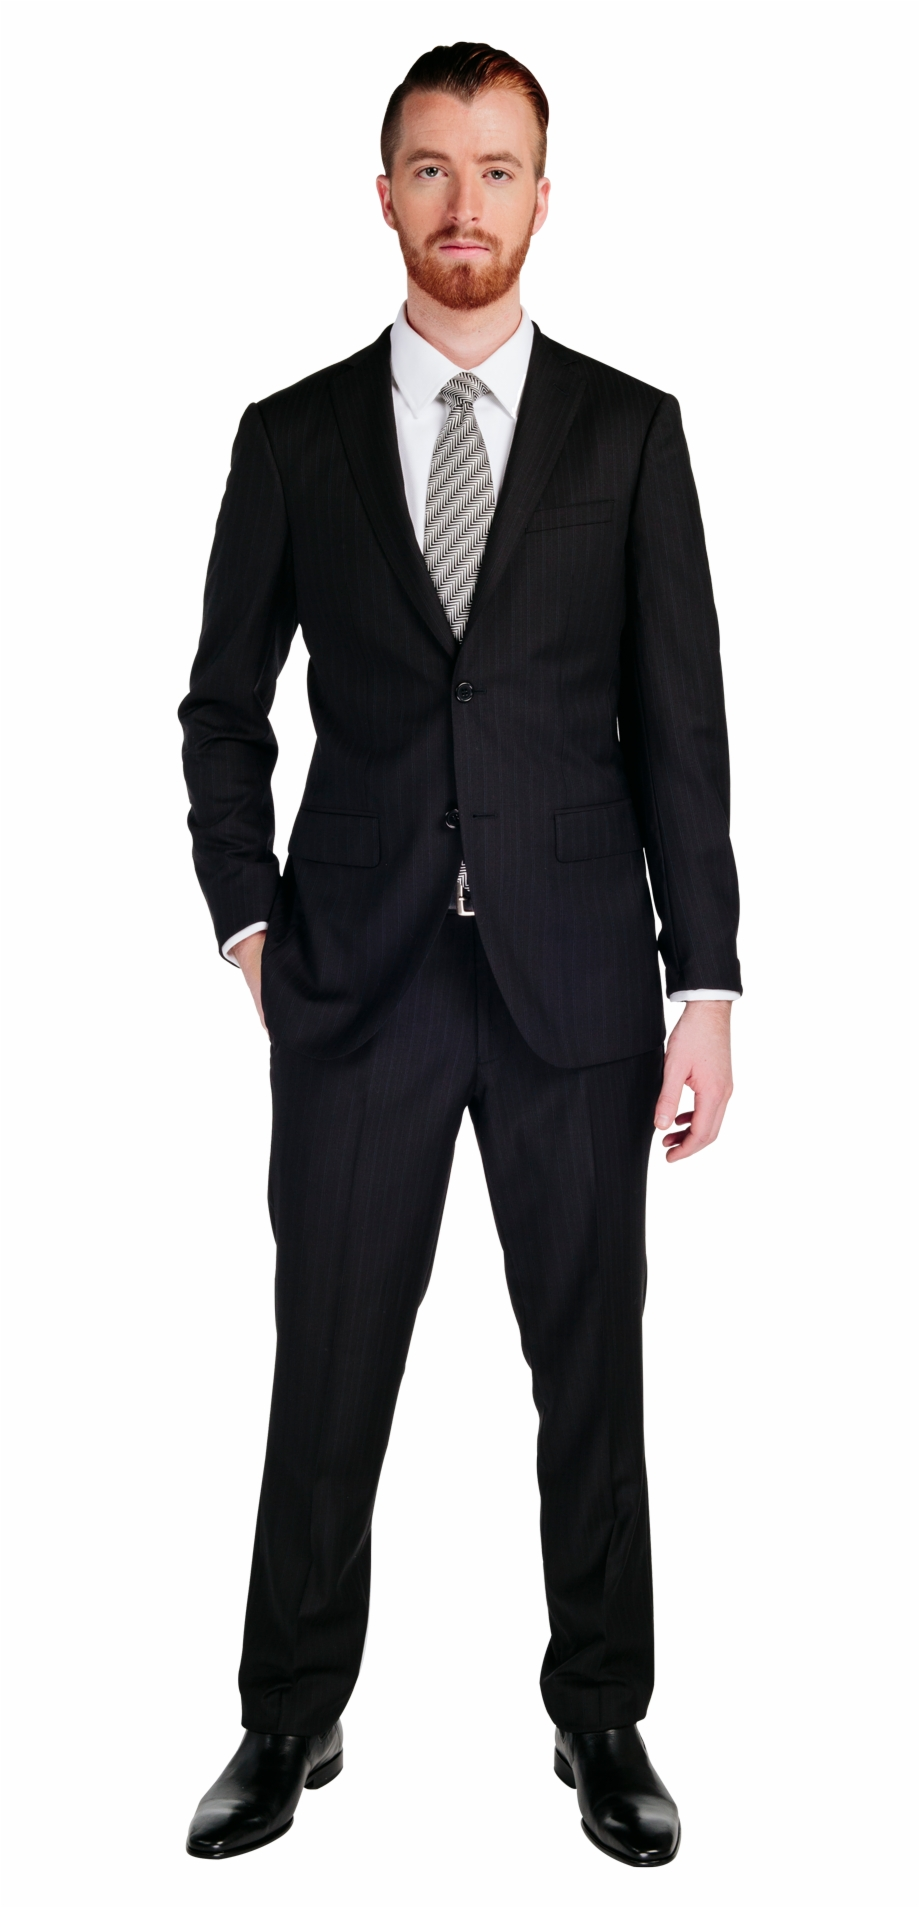 Men Suit Png.